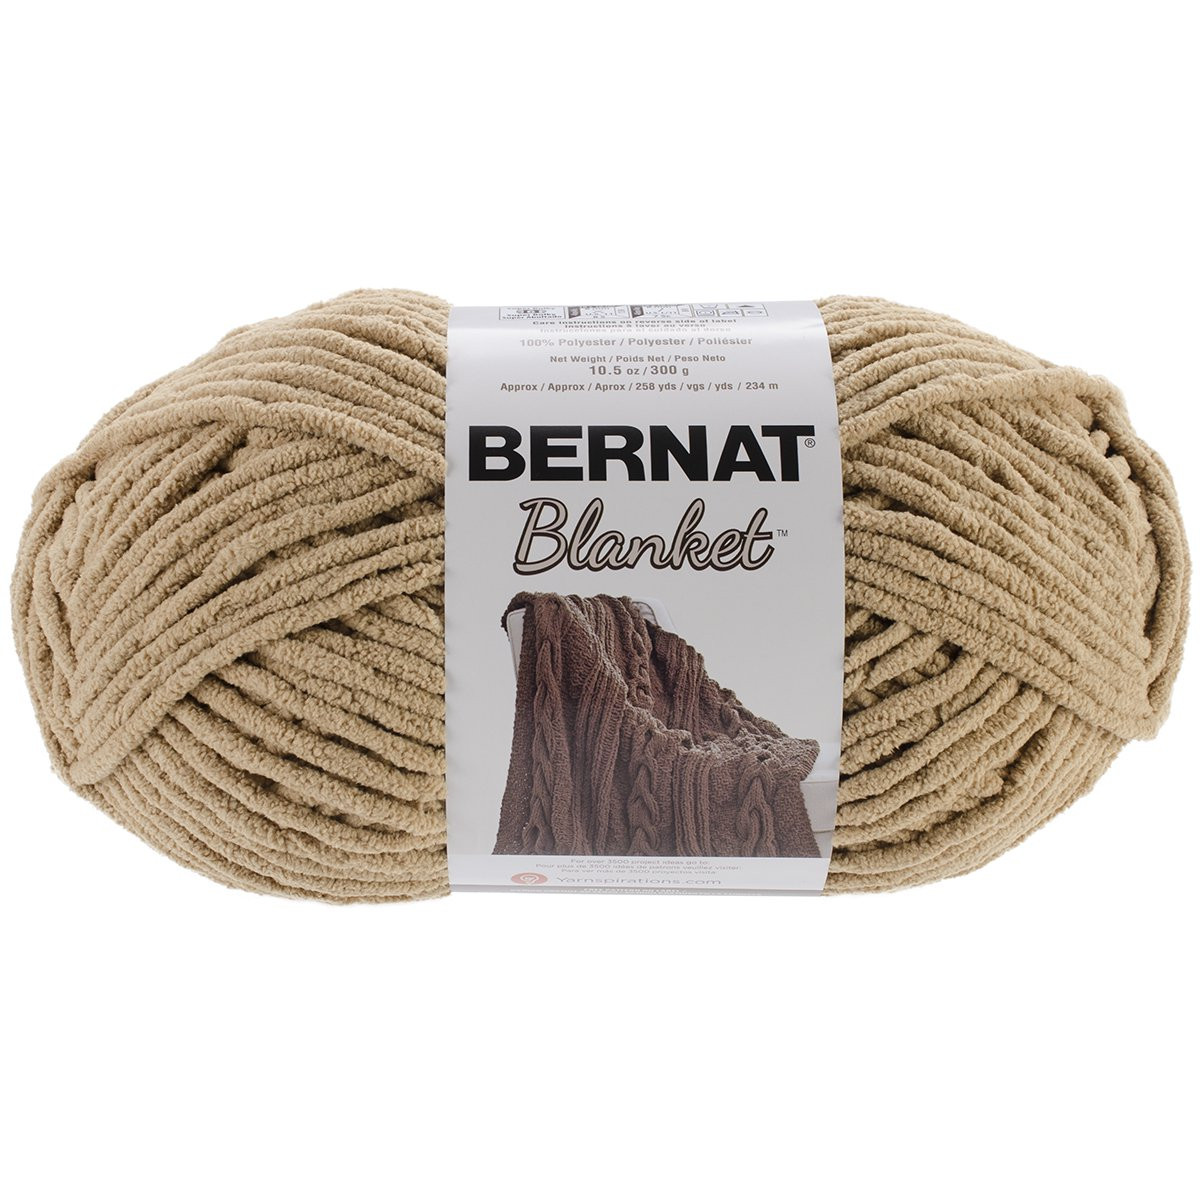 Bernat Chunky Yarn Big Ball Luxury Spinrite Bernat Blanket Big Ball Yarn Of Top 43 Pictures Bernat Chunky Yarn Big Ball